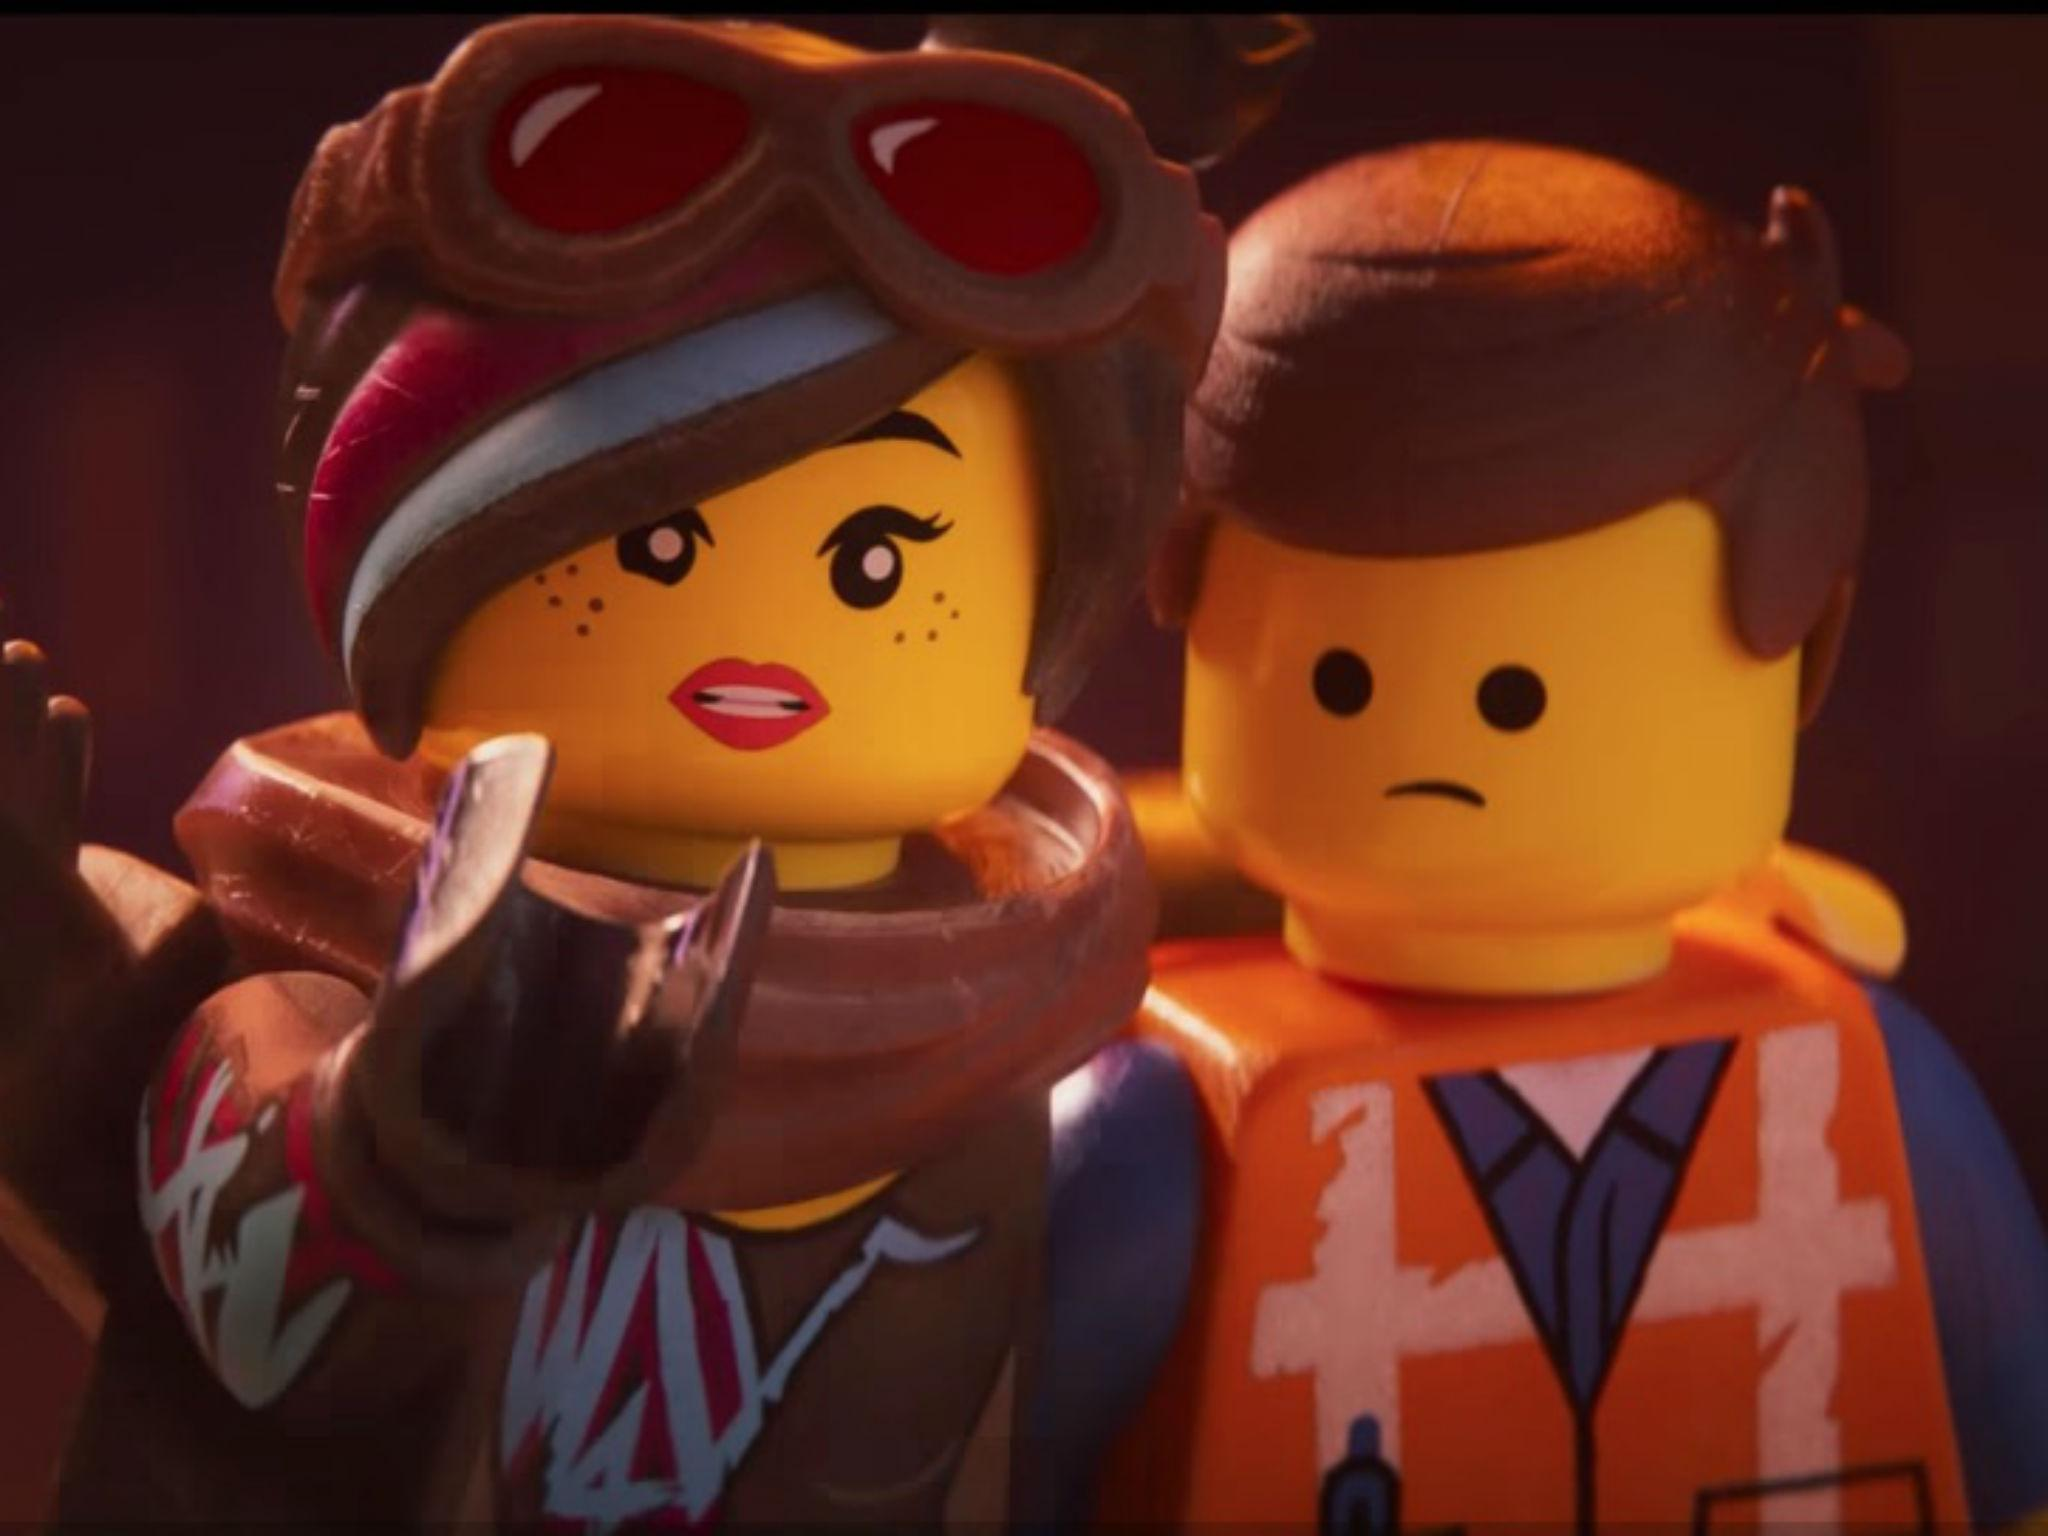 The new Lego Movie 2 trailer has been released - and ...